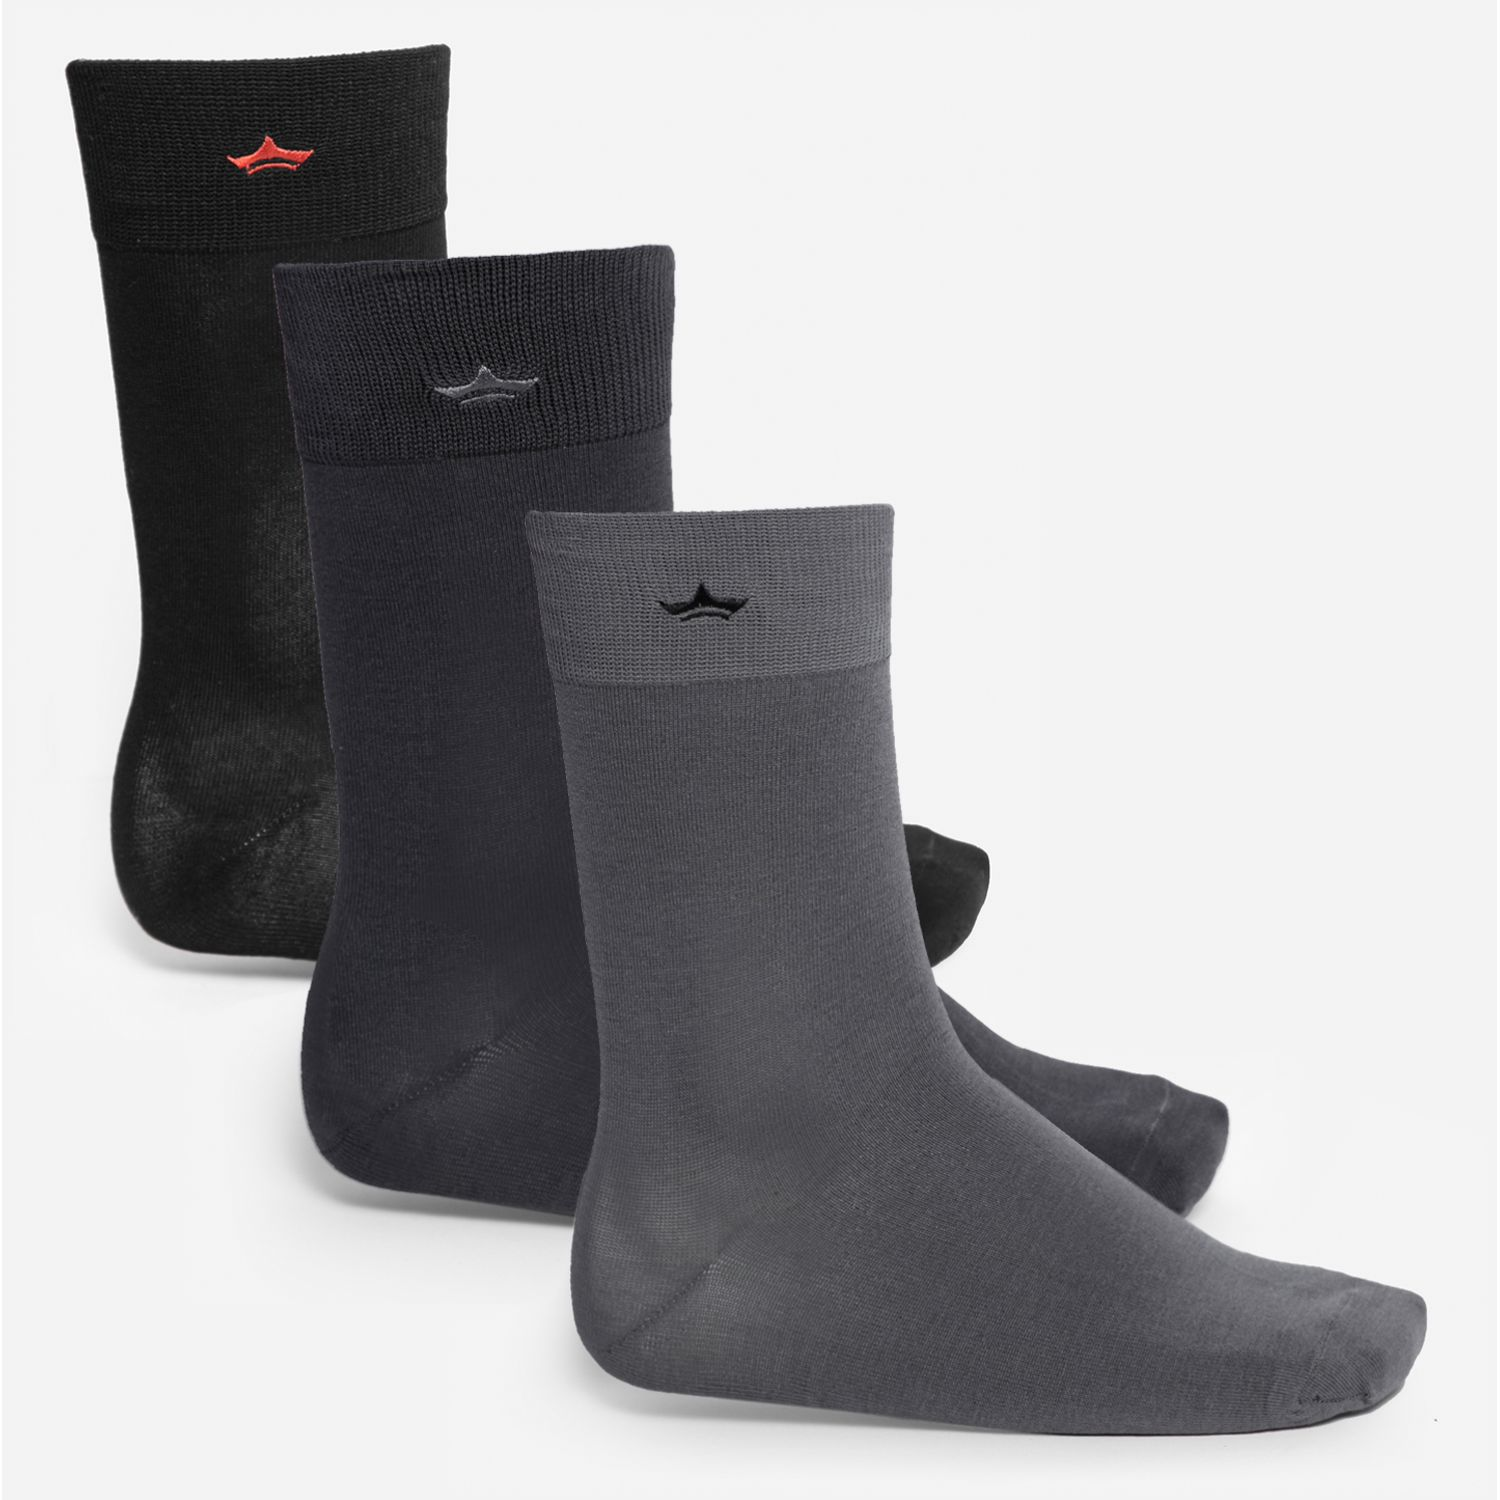 PALMERS PACK 3 CALCETINES HILO Negro / acero Calcetines